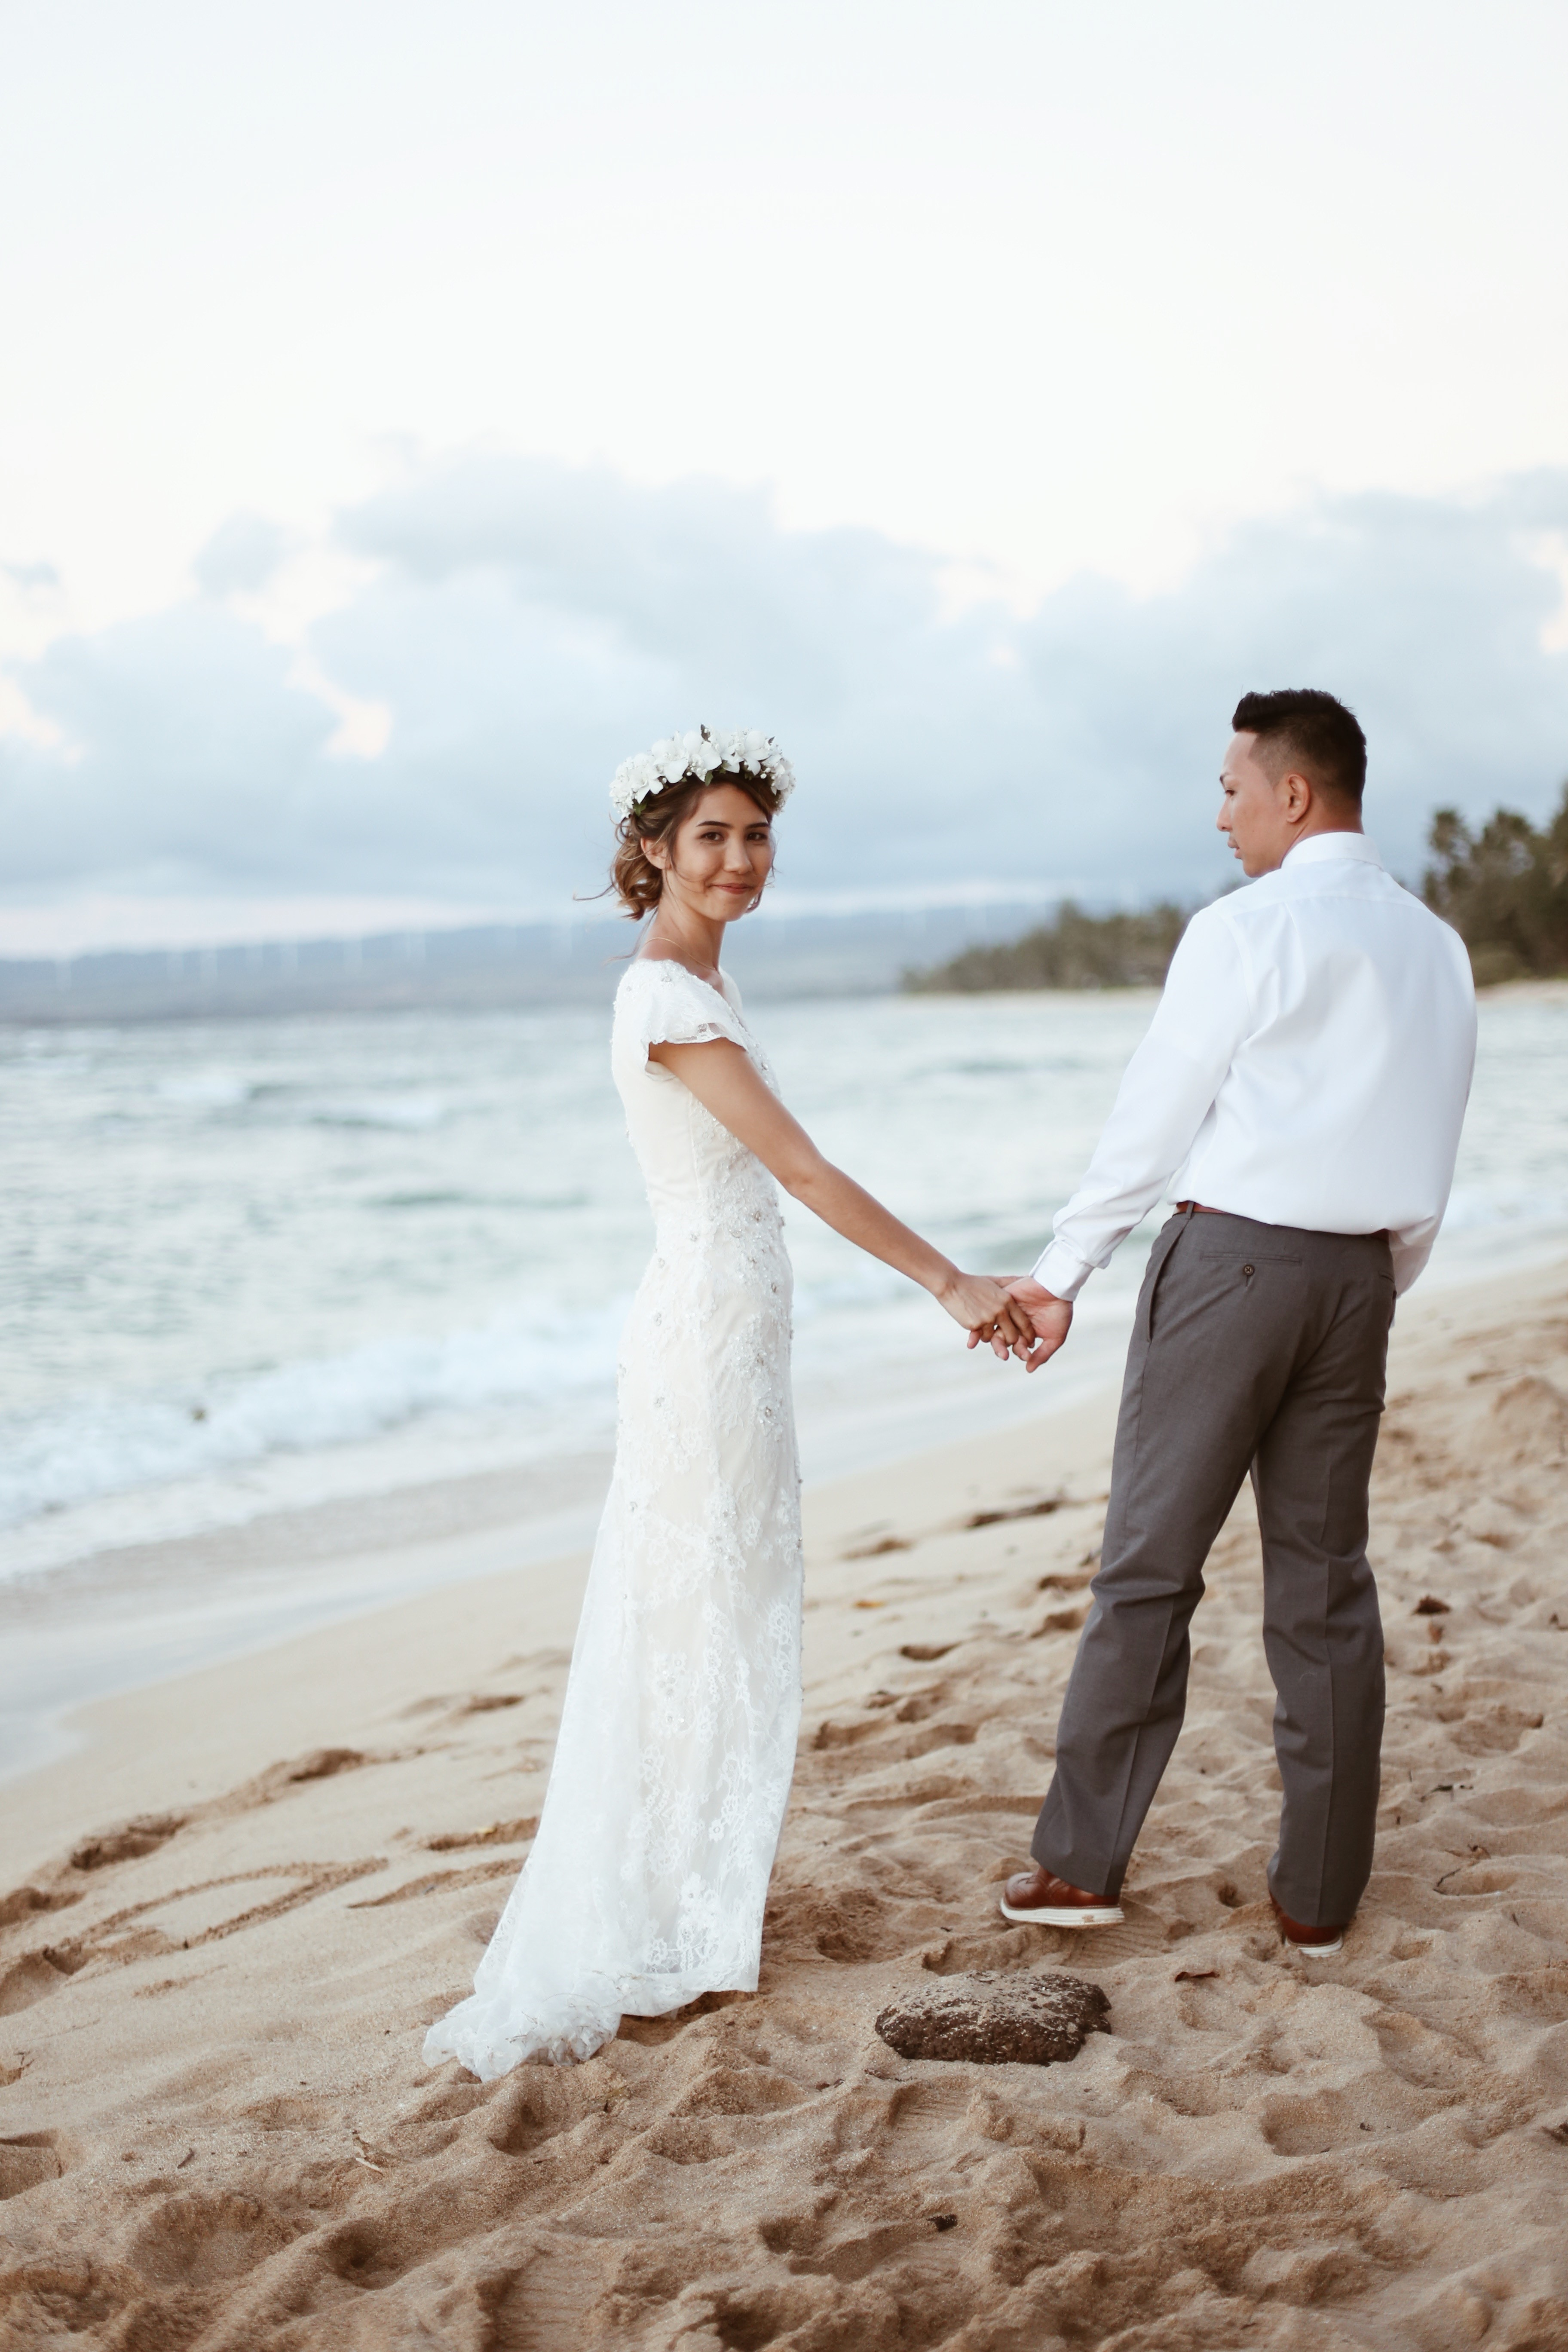 Sadie added flutter cap sleeves and covered her illusion lace back in a lightweight, lace sheath gown